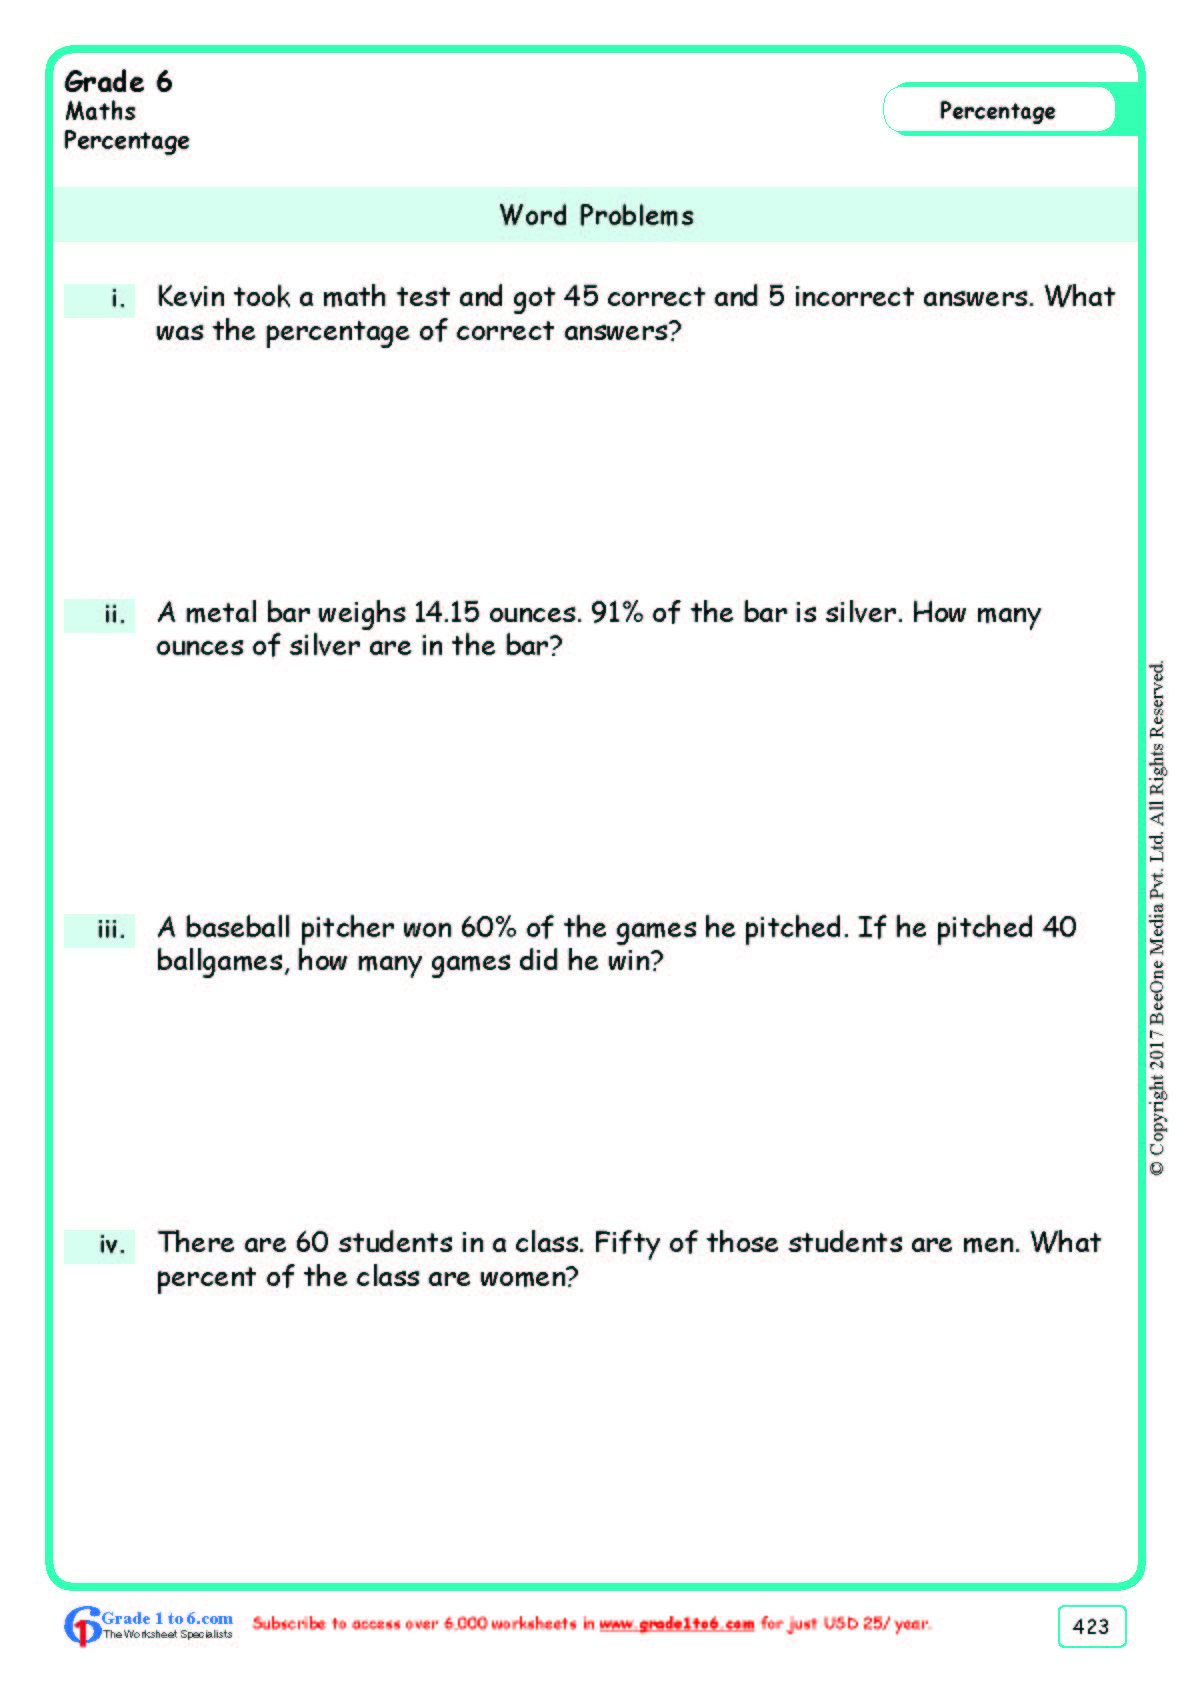 Worksheet Grad e 6 Math Word Problems in 2020 Word